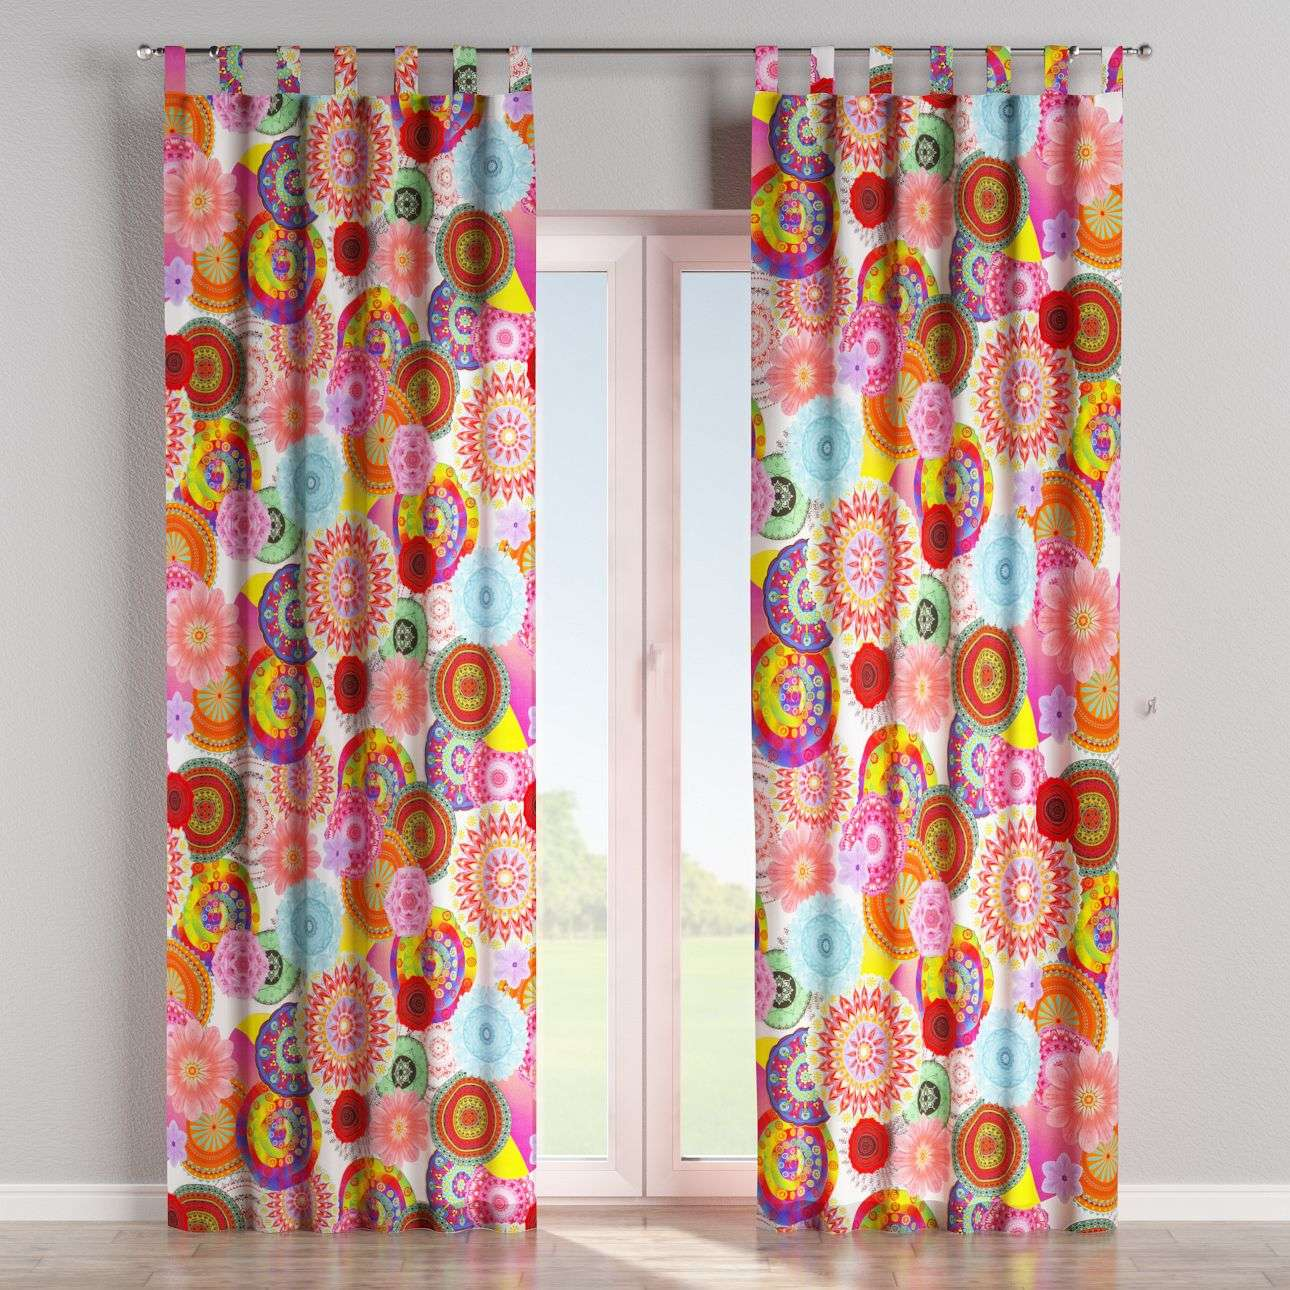 Tab top curtains 130 x 260 cm (51 x 102 inch) in collection Comic Book & Geo Prints, fabric: 135-22